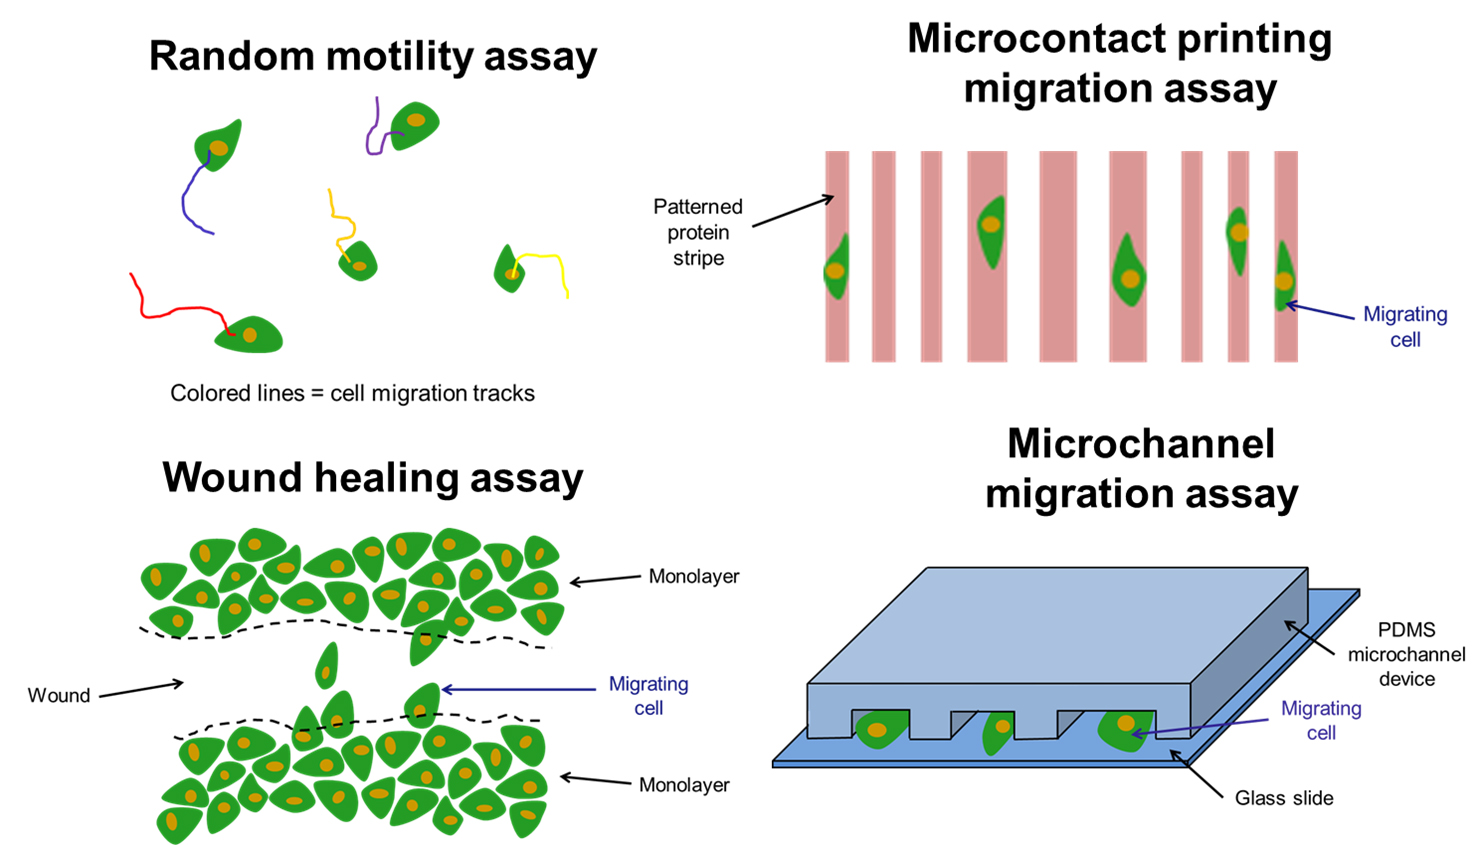 Cell migration assays